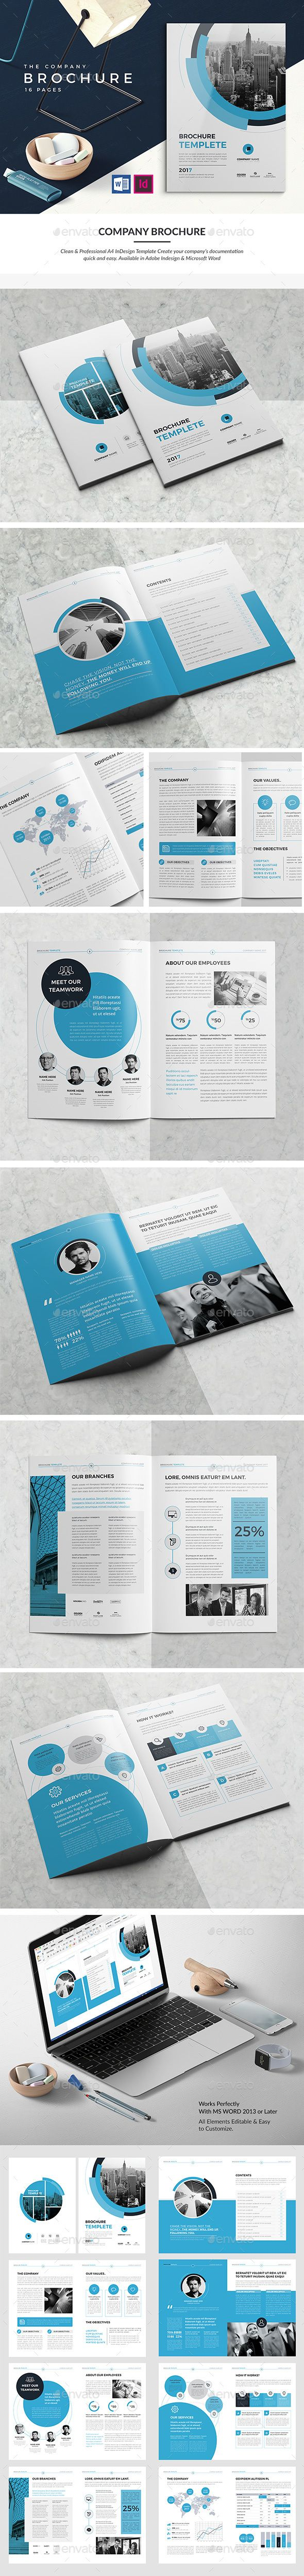 CO Brochure 16 Pages — InDesign INDD #indesign #brochure • Download ➝ https://graphicriver.net/item/co-brochure-16-pages/19561947?ref=pxcr